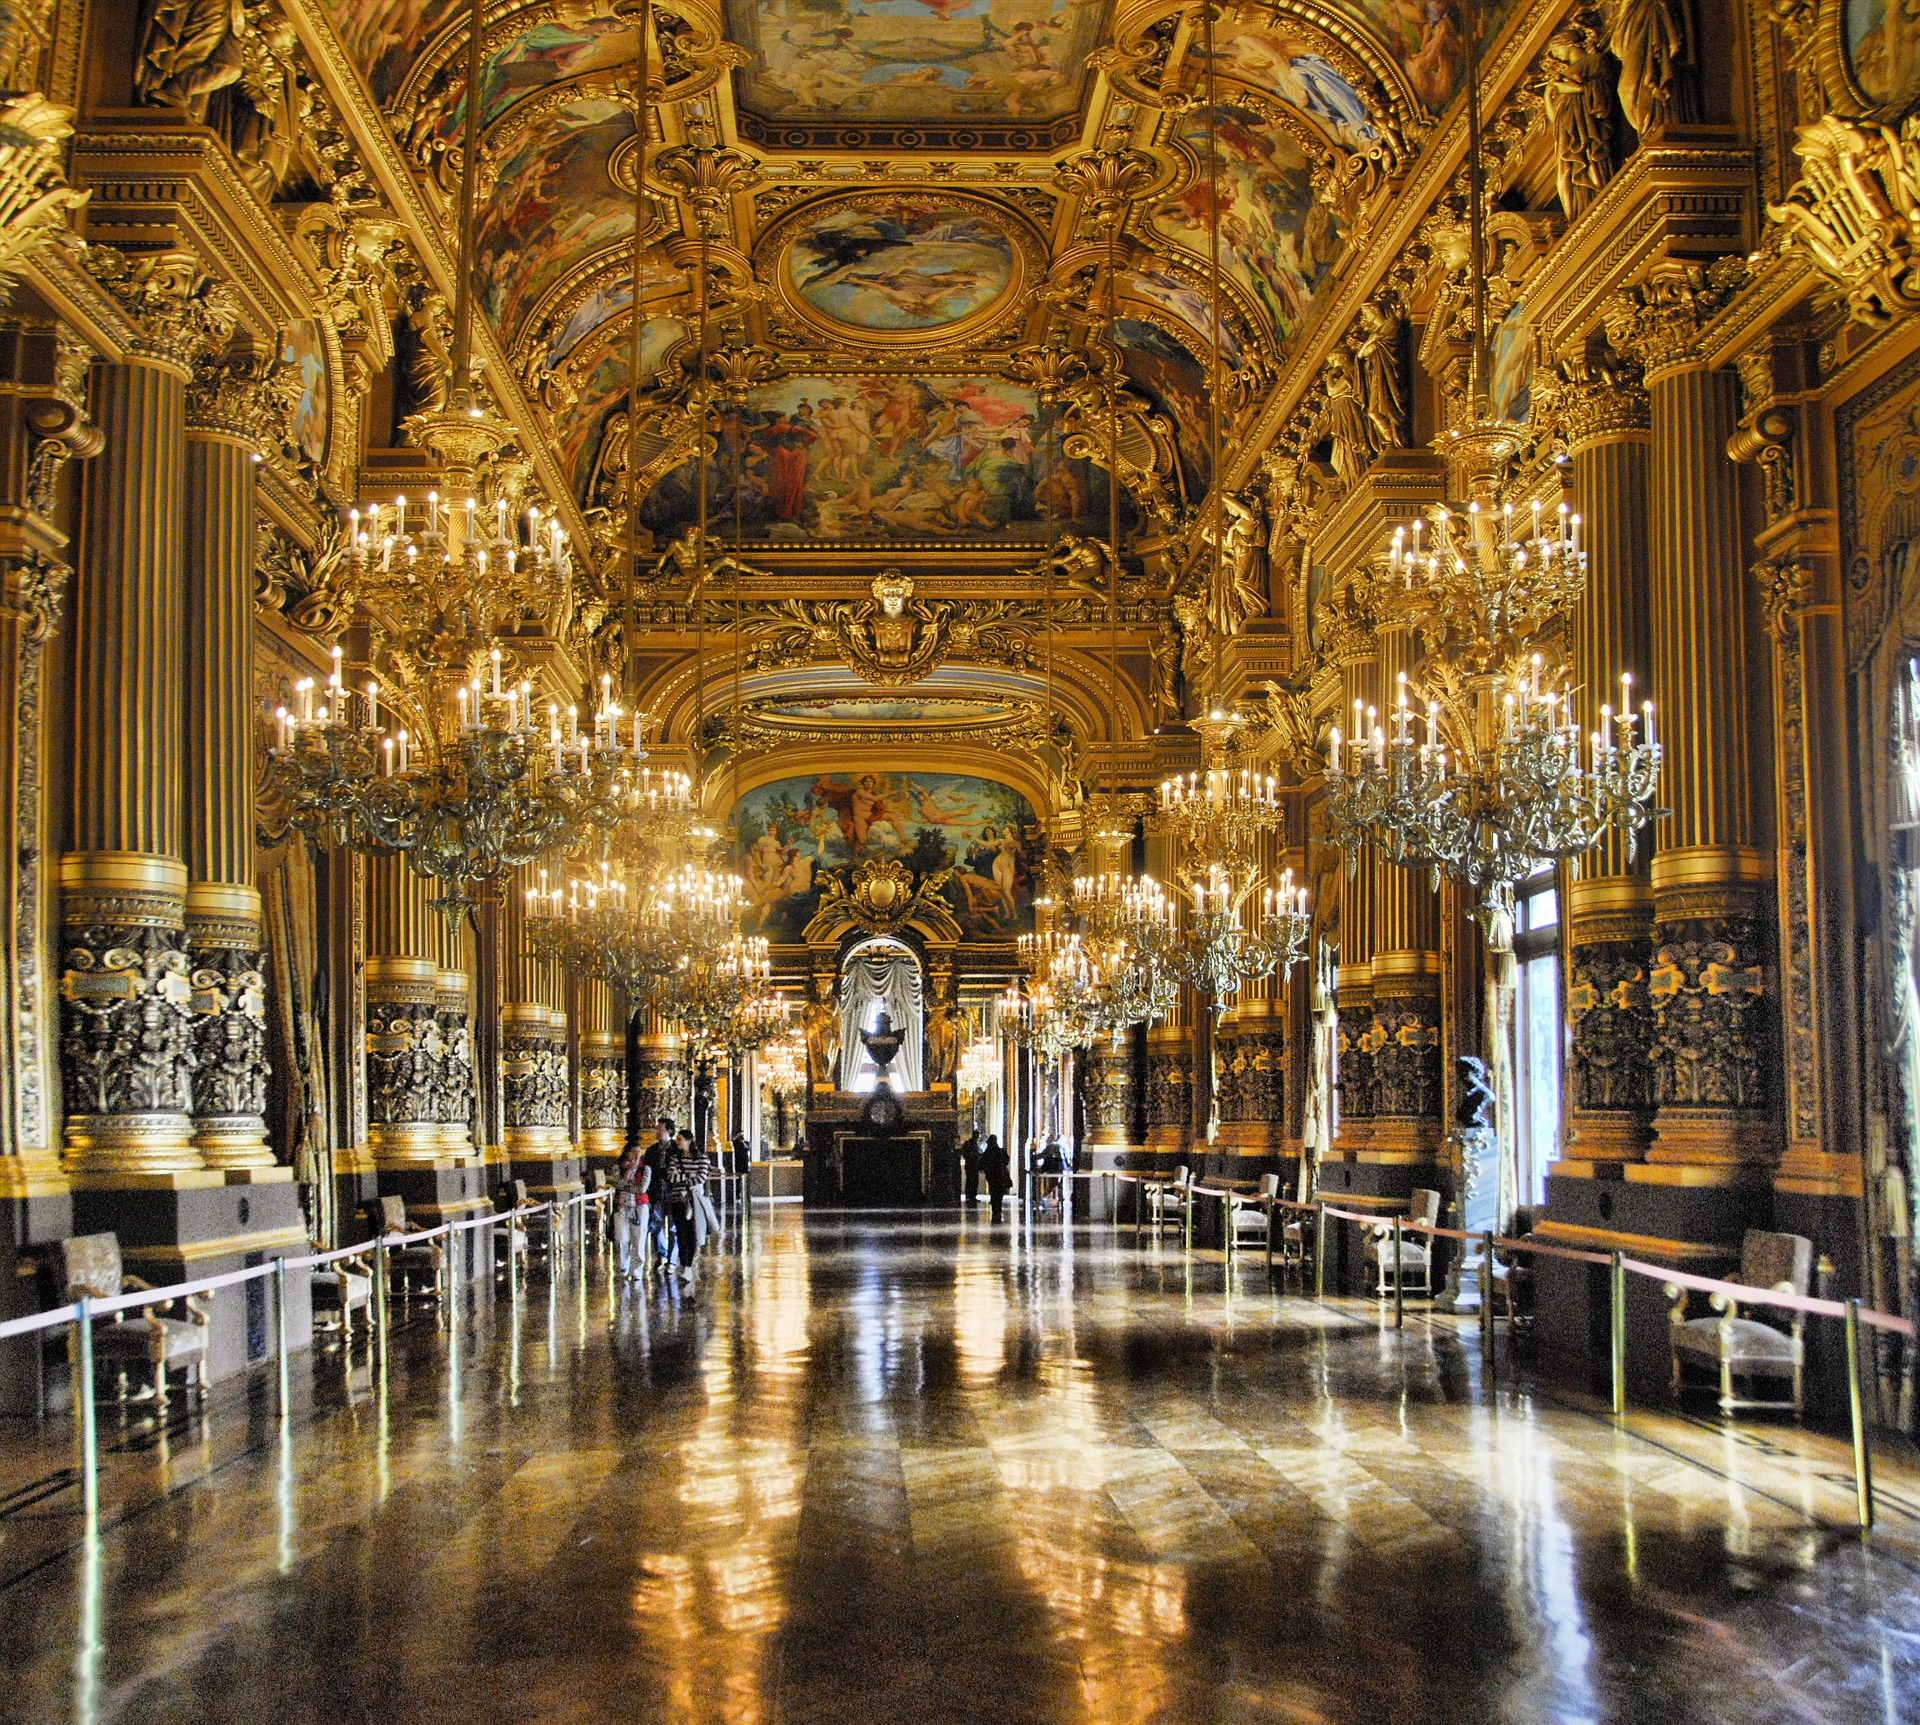 Inside Palais Garnier (Paris Opera House), Paris, France